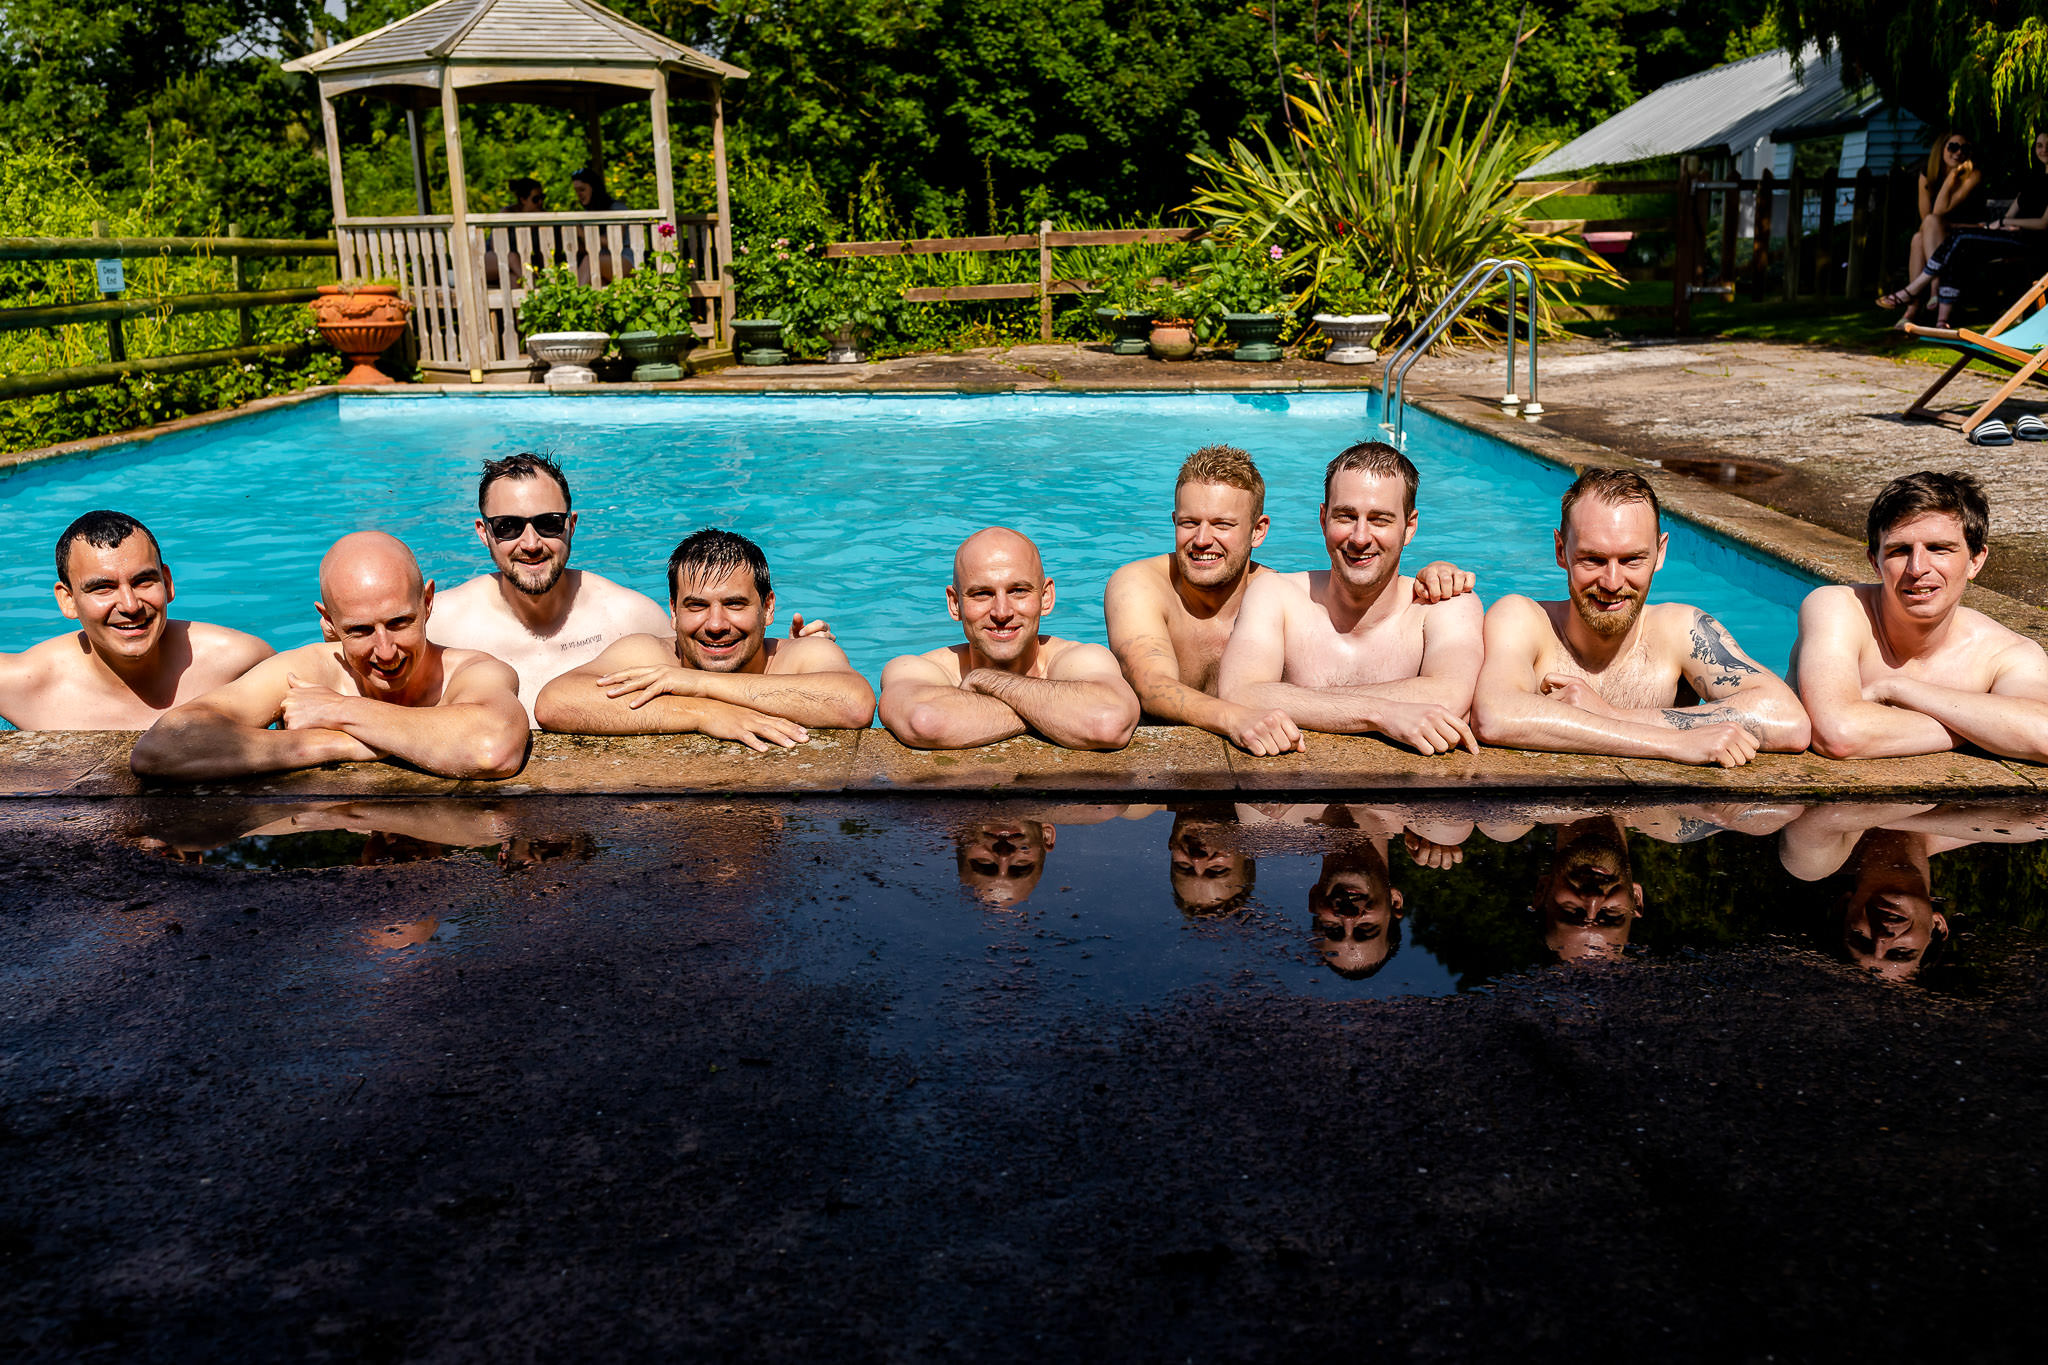 Caer Llan Wedding Venue Monmouth - Groomsmen in pool